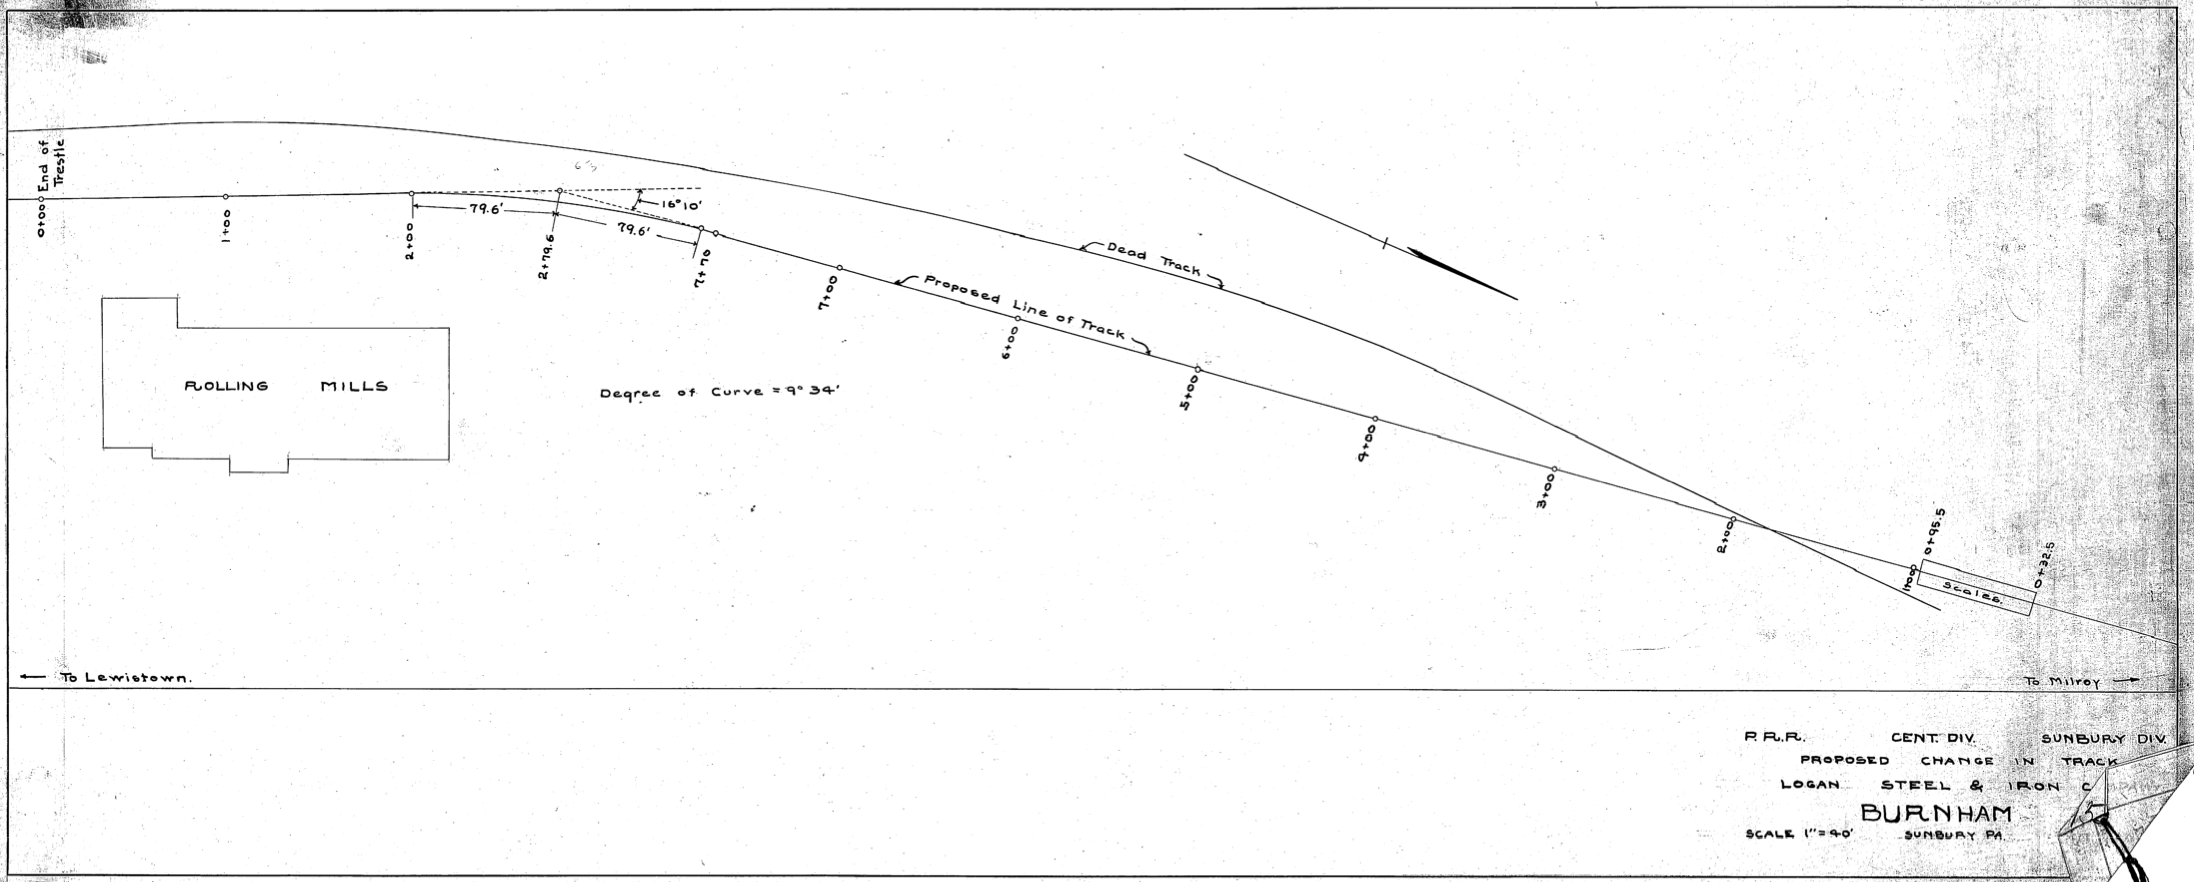 Undated Track Diagram of Logan Iron Steel